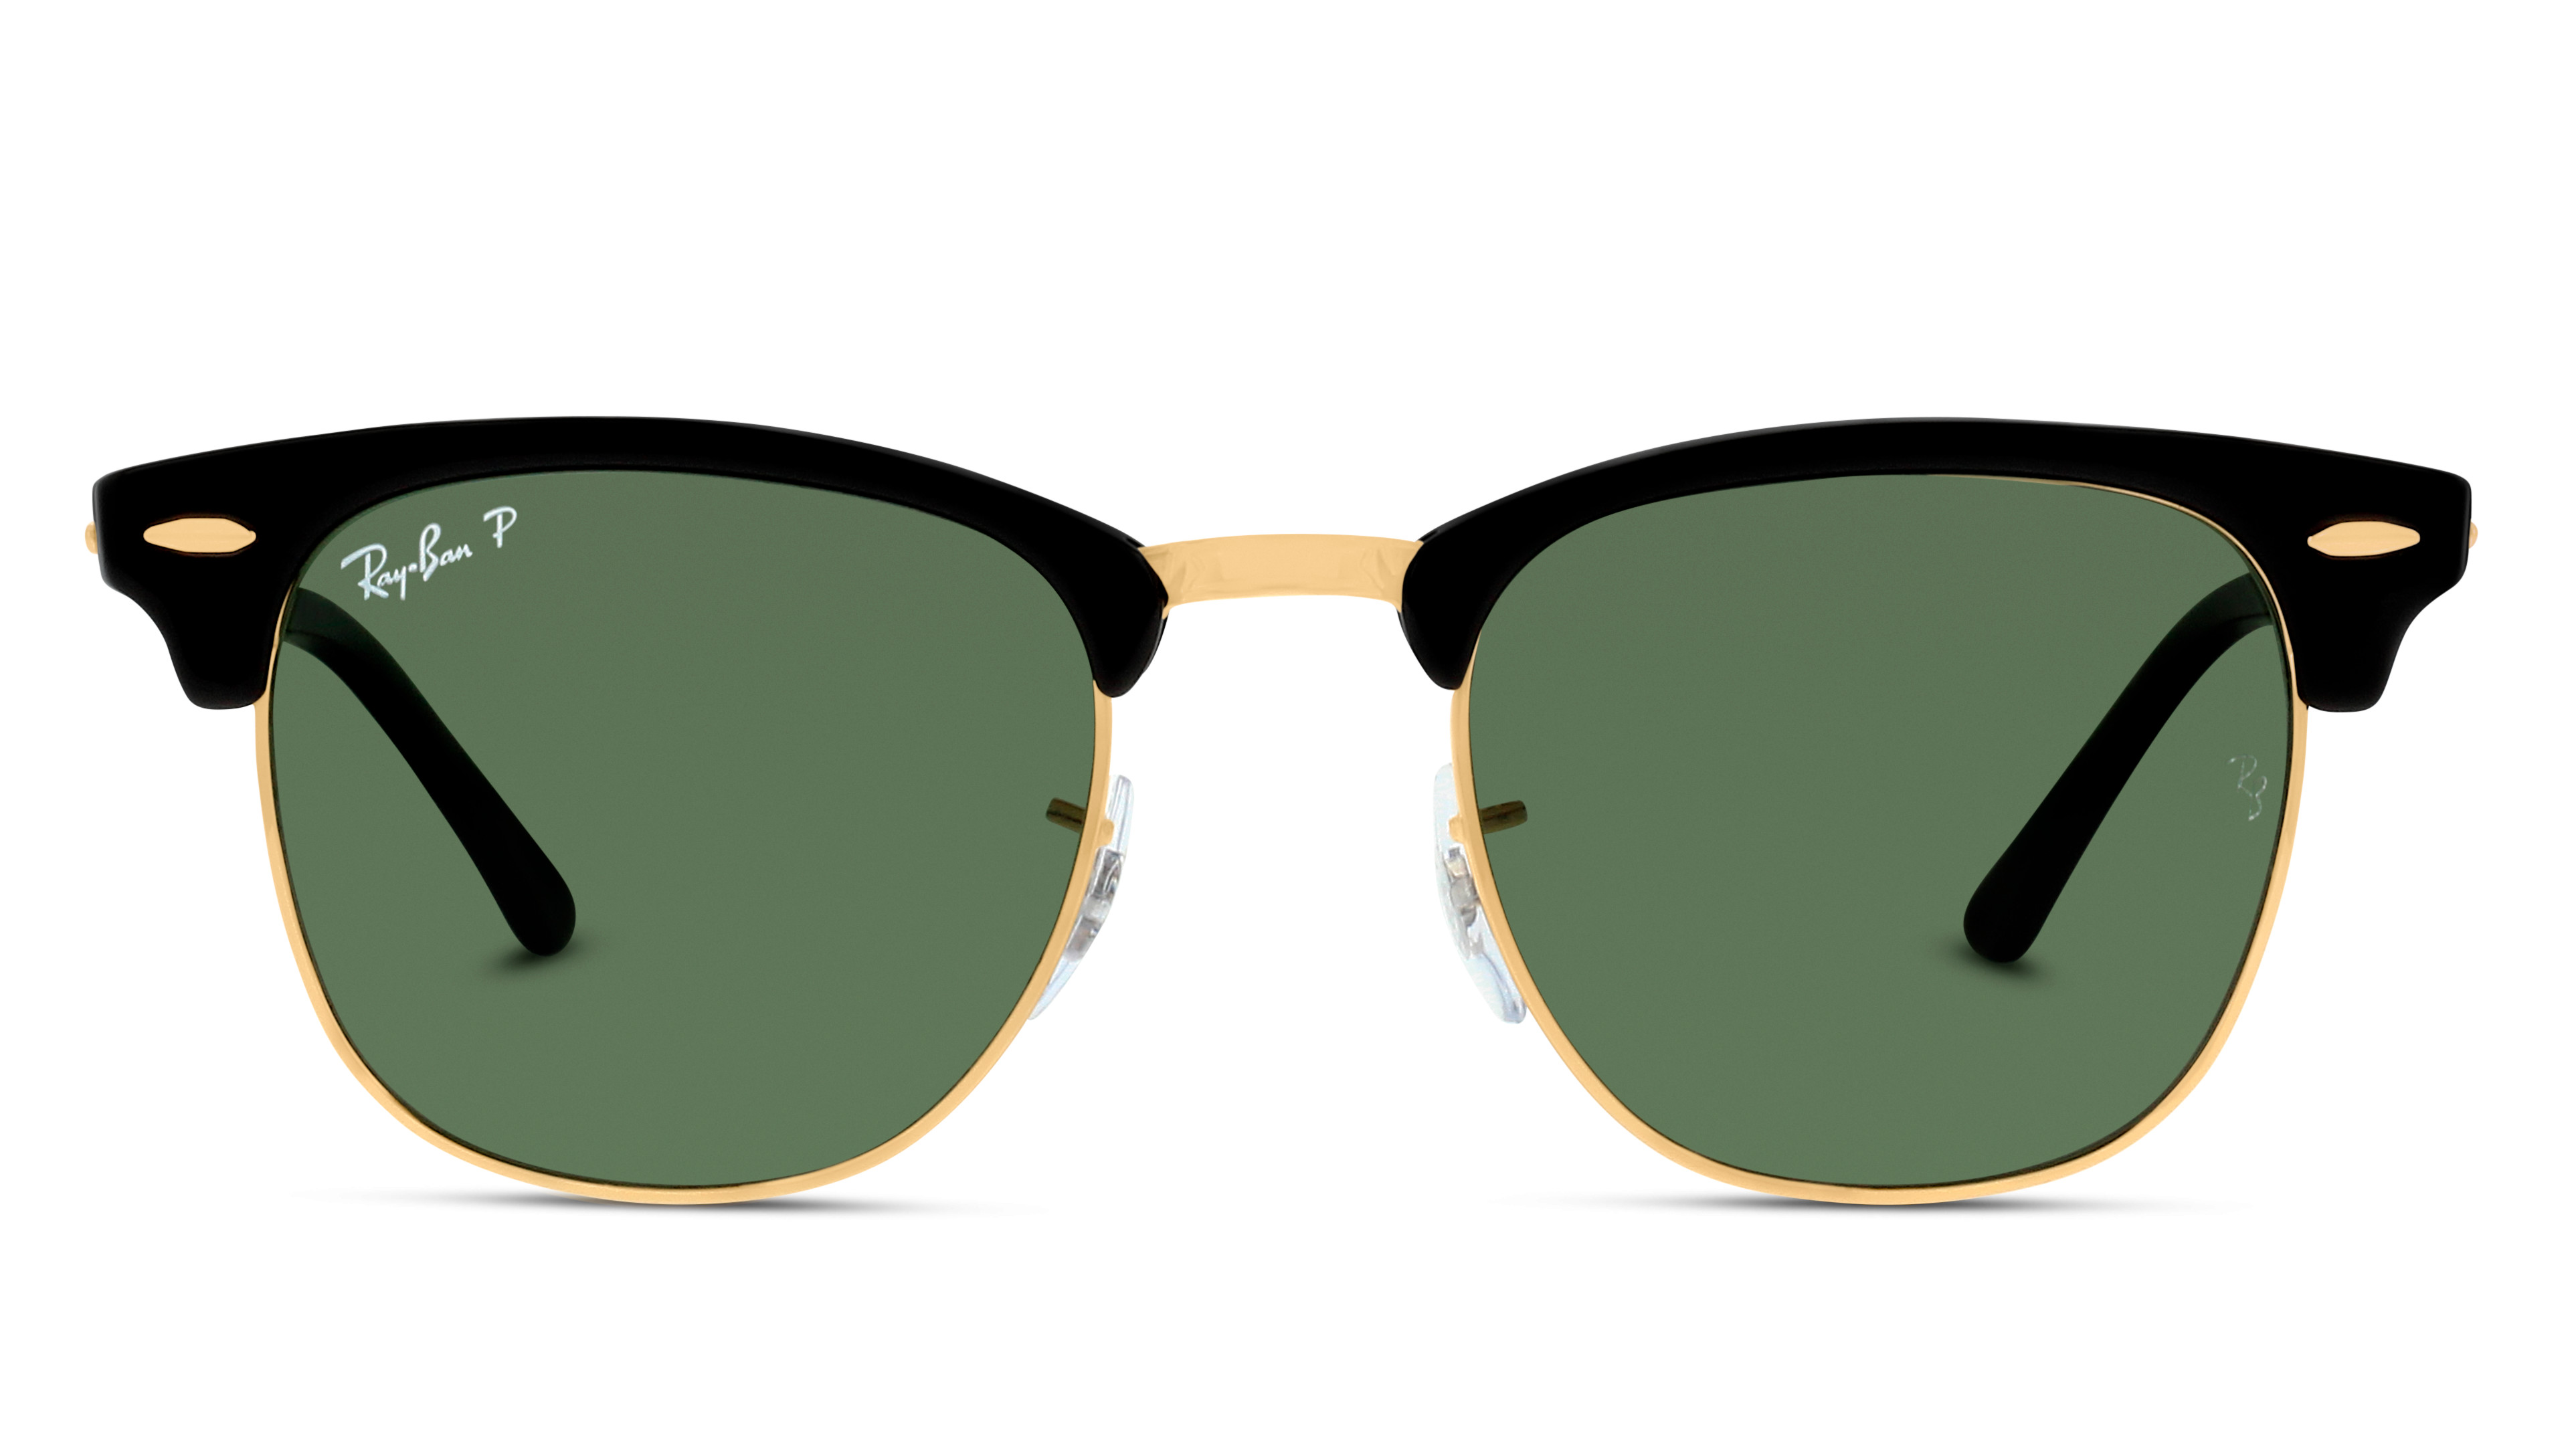 805289346883-front-01-ray-ban-0rb3016-Clubmaster-black